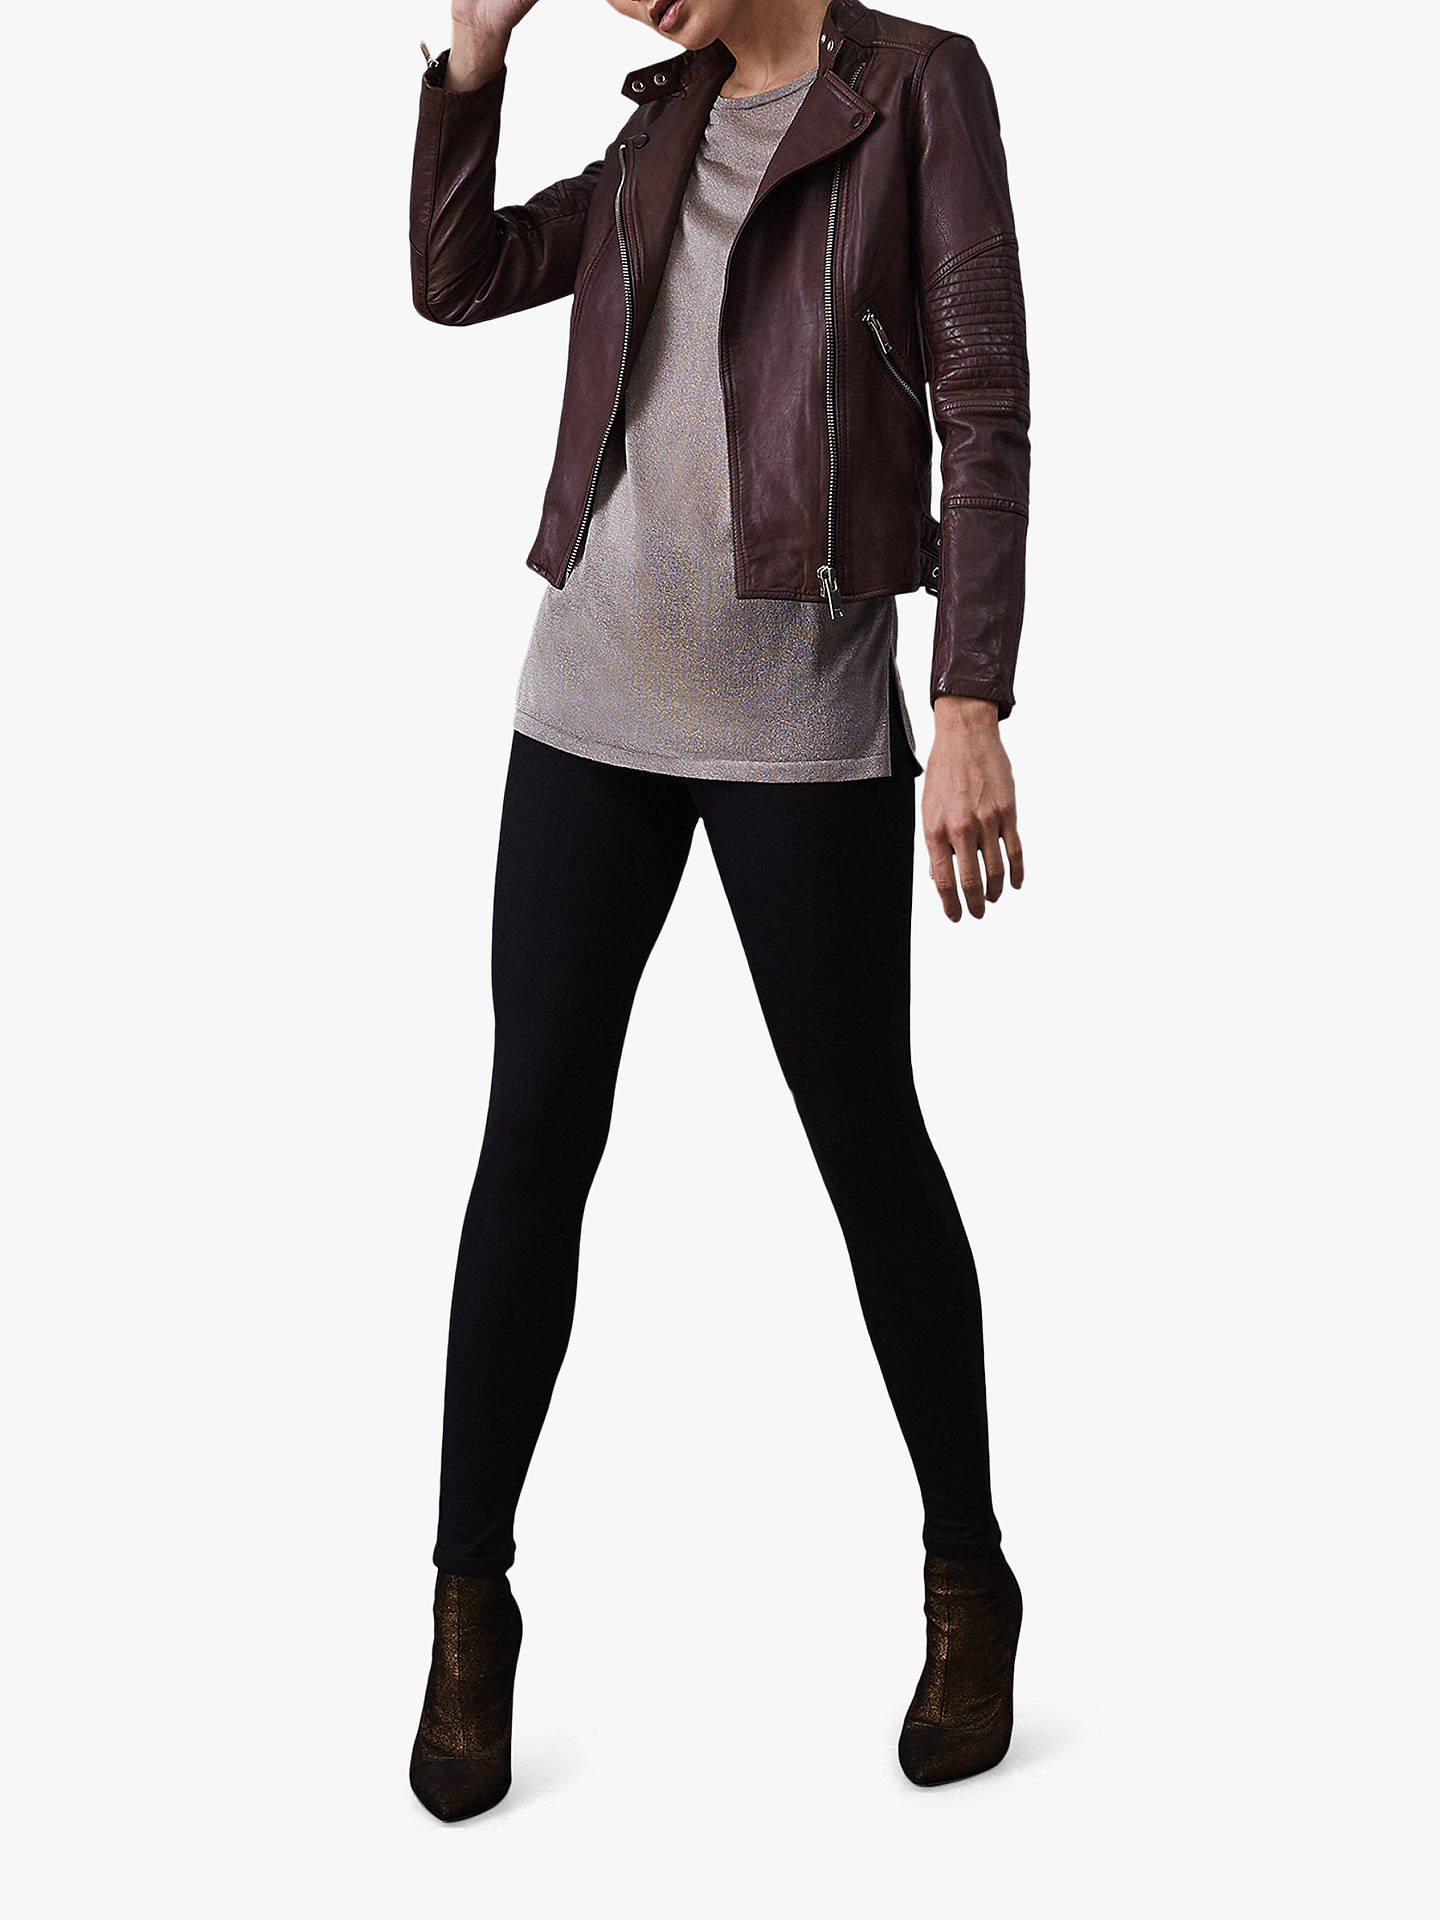 BuyReiss Tay Leather Stitch Jacket, Ox Blood, 6 Online at johnlewis.com